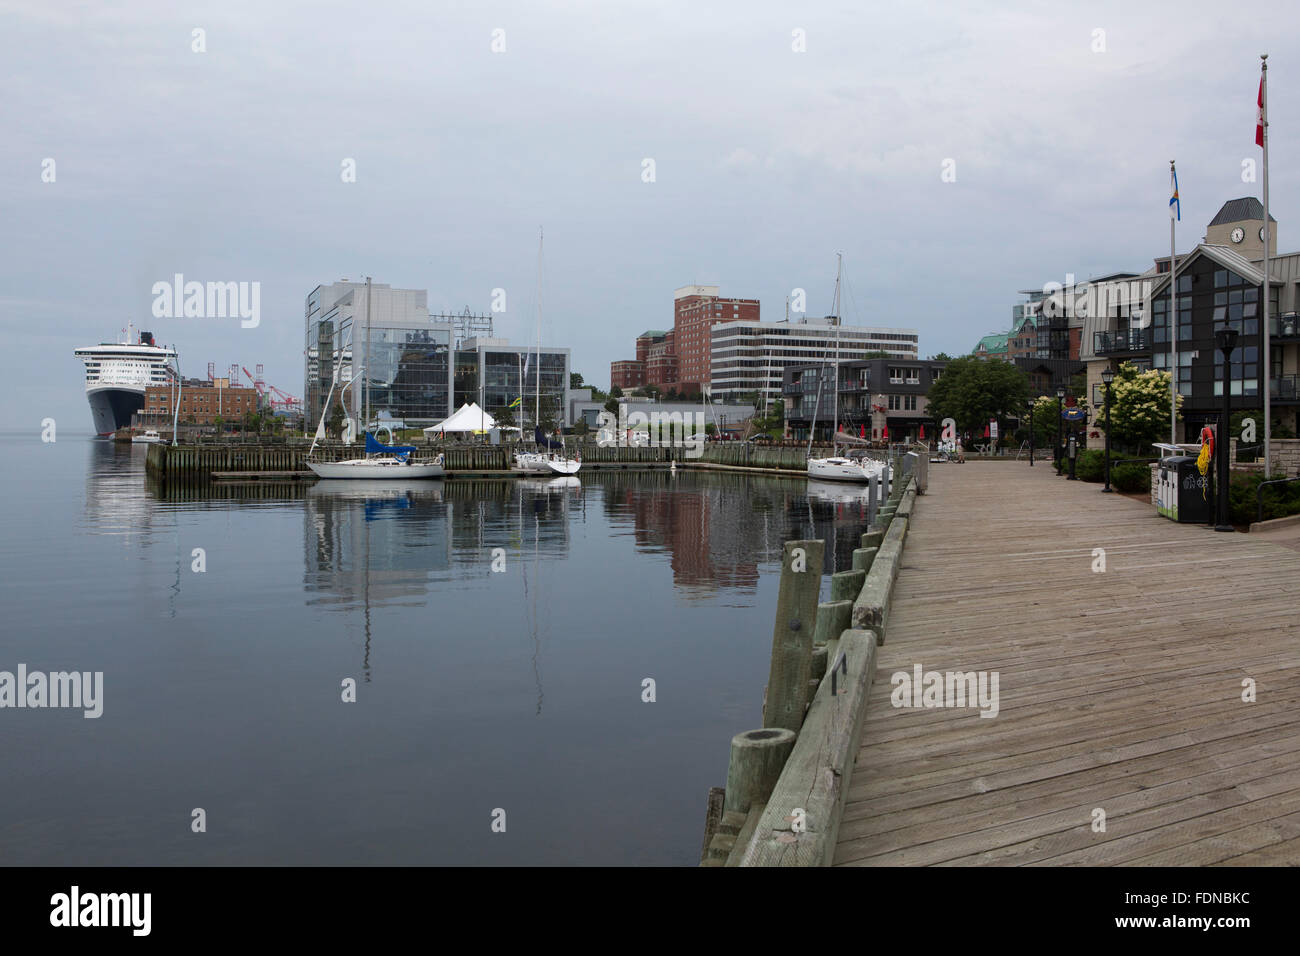 Wooden wharves by the waterfront in Halifax, Canada. The wharves are a legacy of the freight trade in the Nova Scotian - Stock Image